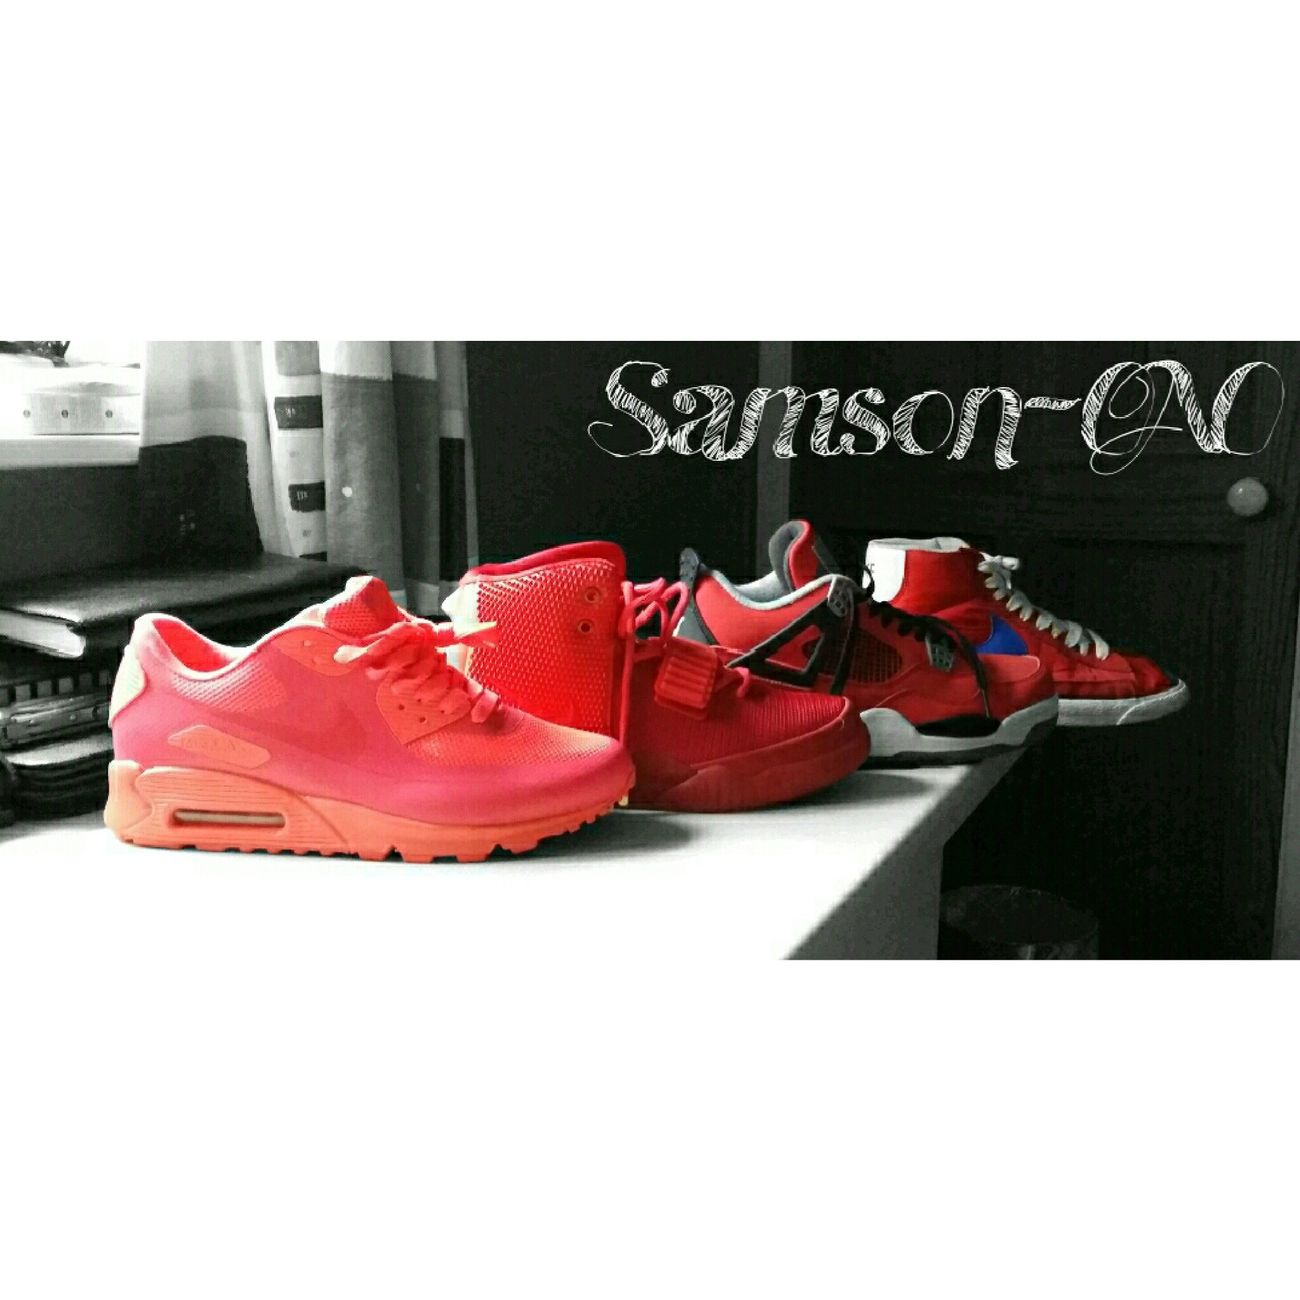 Blood money Red Octobers Hyperfuse Jordans Nike